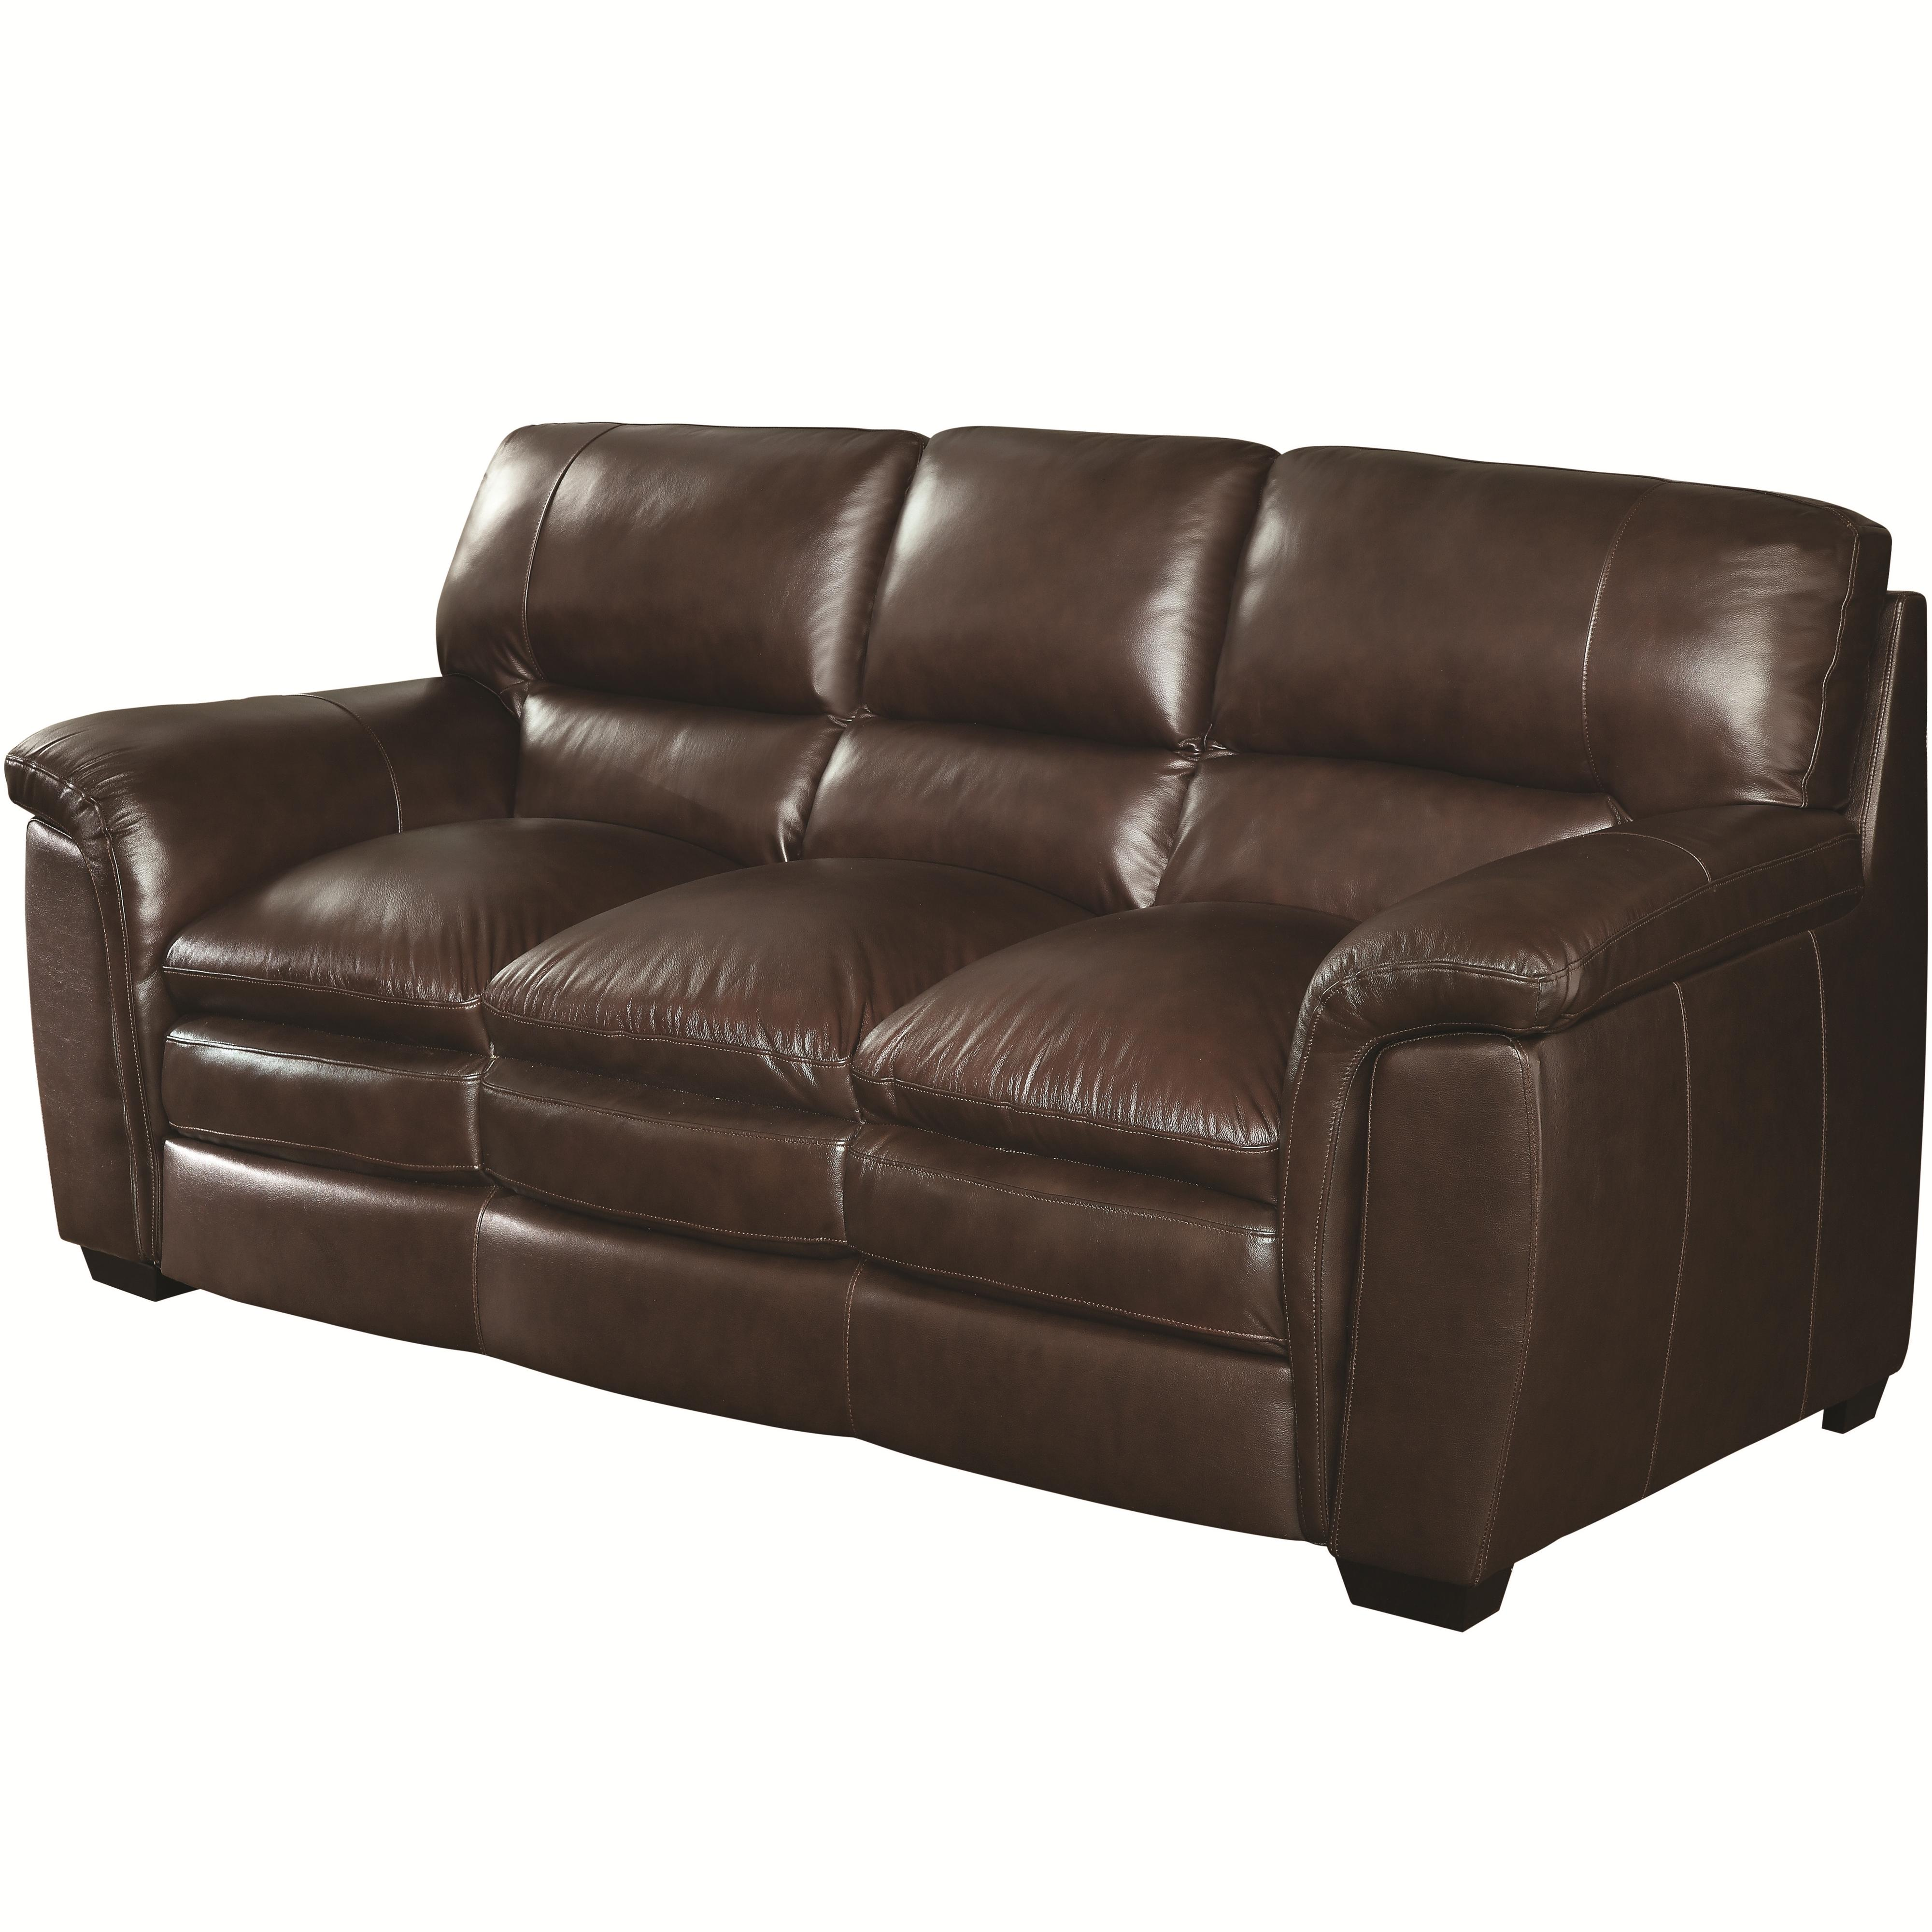 Burton Transitional Sofa With Pillow Top Arms Quality Furniture At